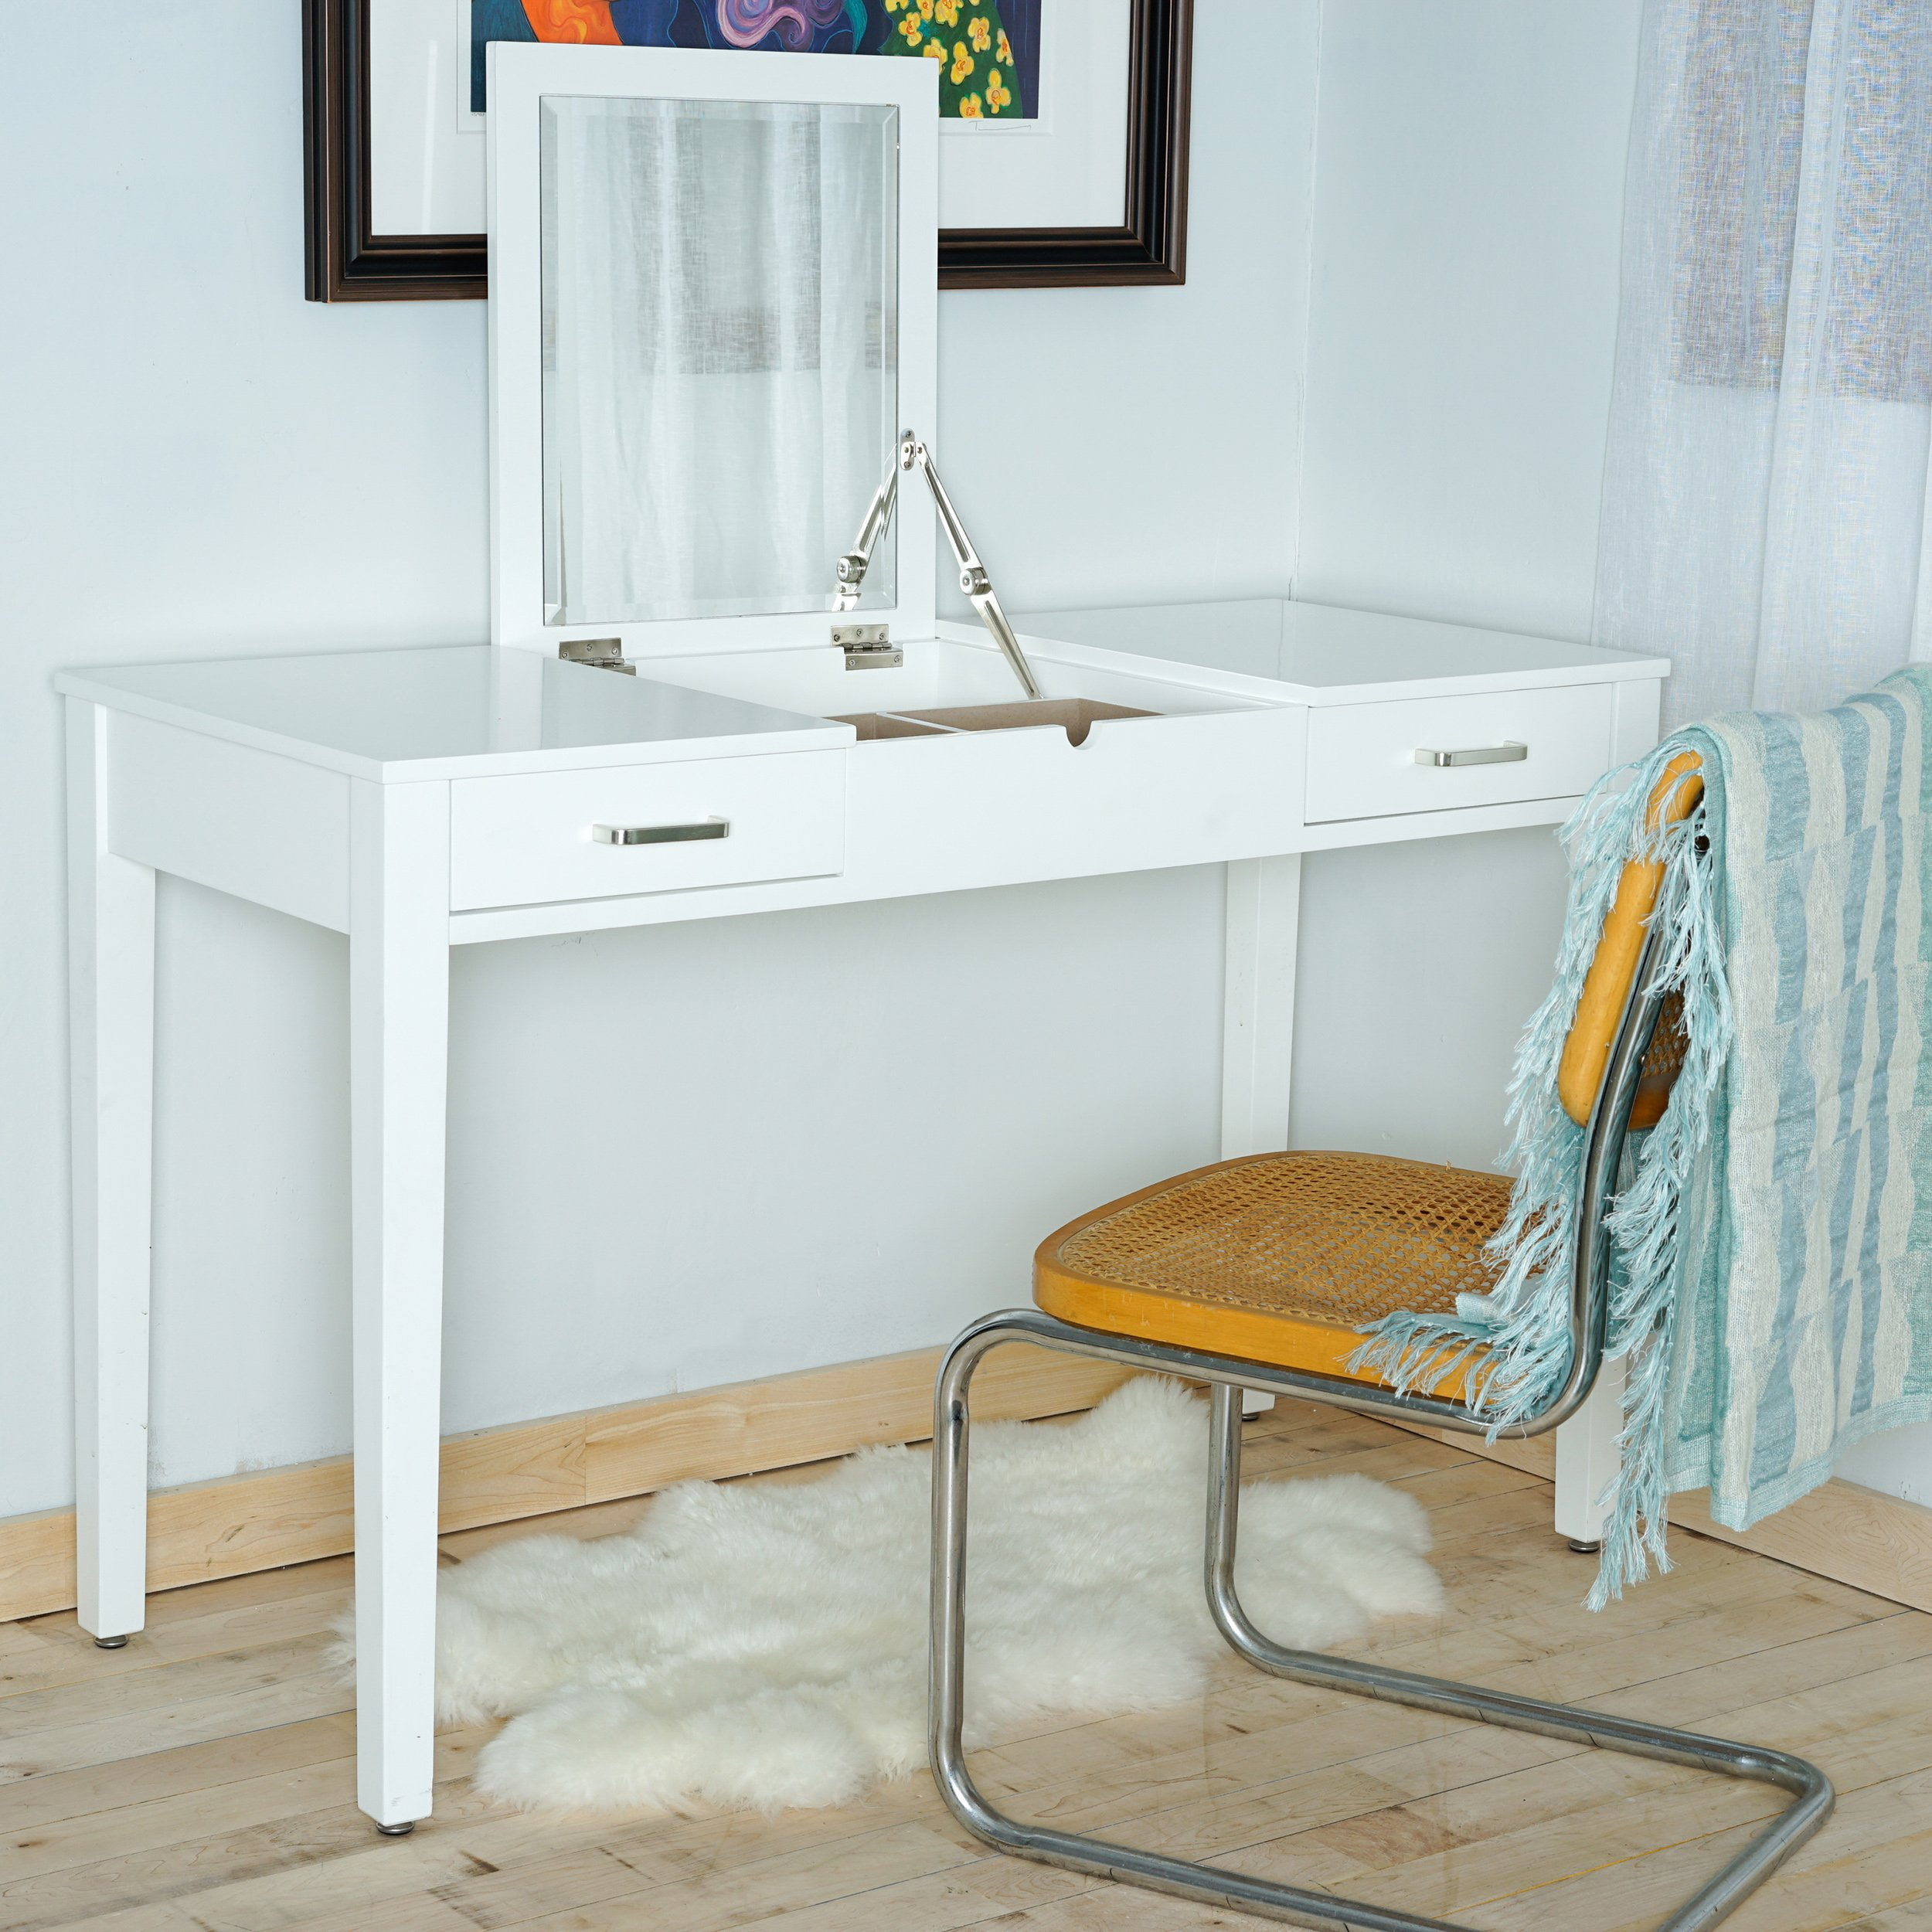 Hives and Honey 6006-099 Ainsley Vanity Desk, 30'' x 46'' x 20'', Crisp White by Hives and Honey